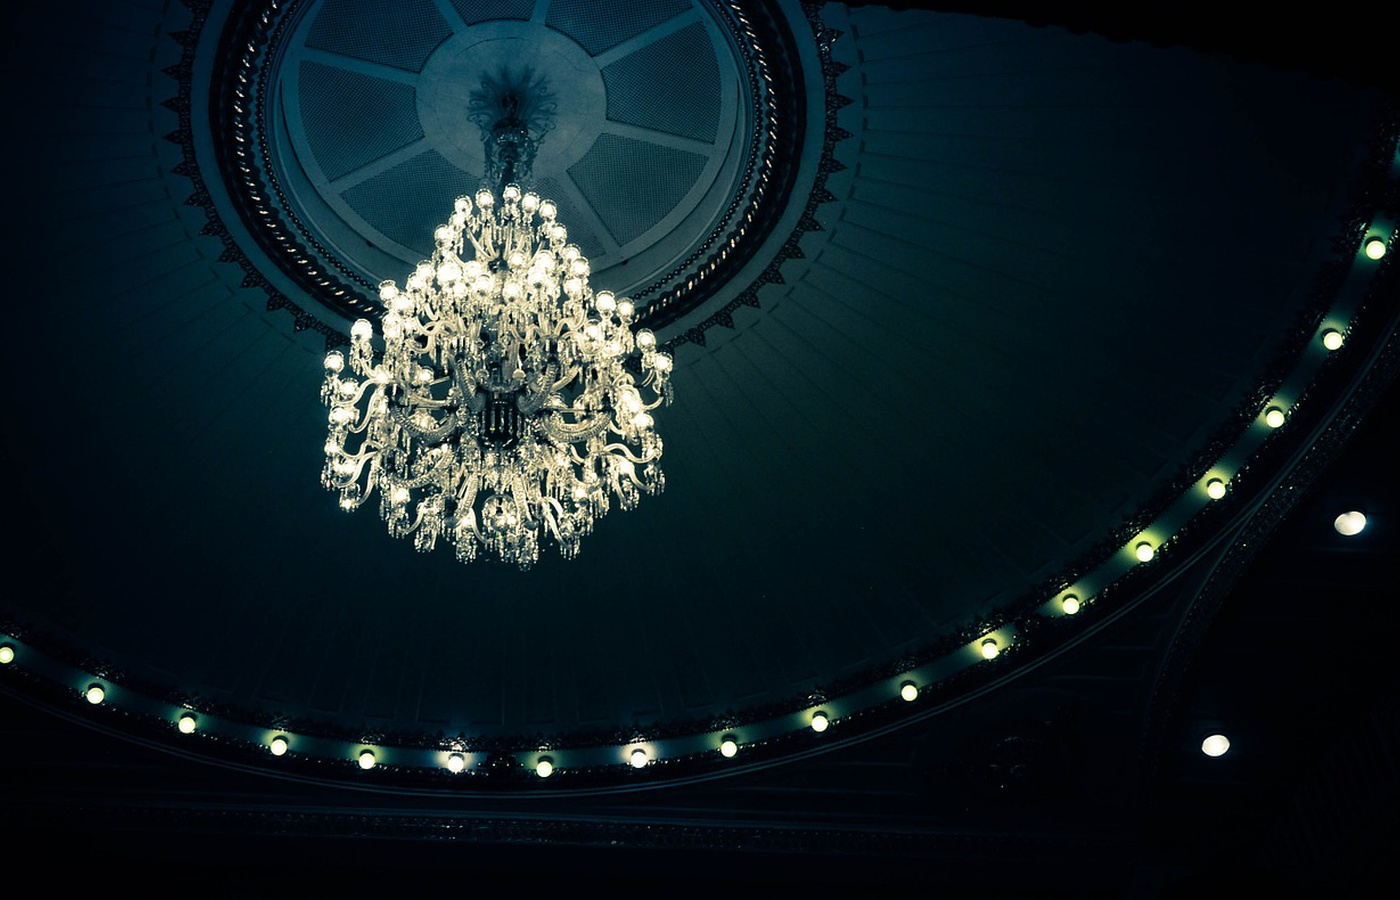 The Most Expensive Chandelier in the World: a Story of Oppulence